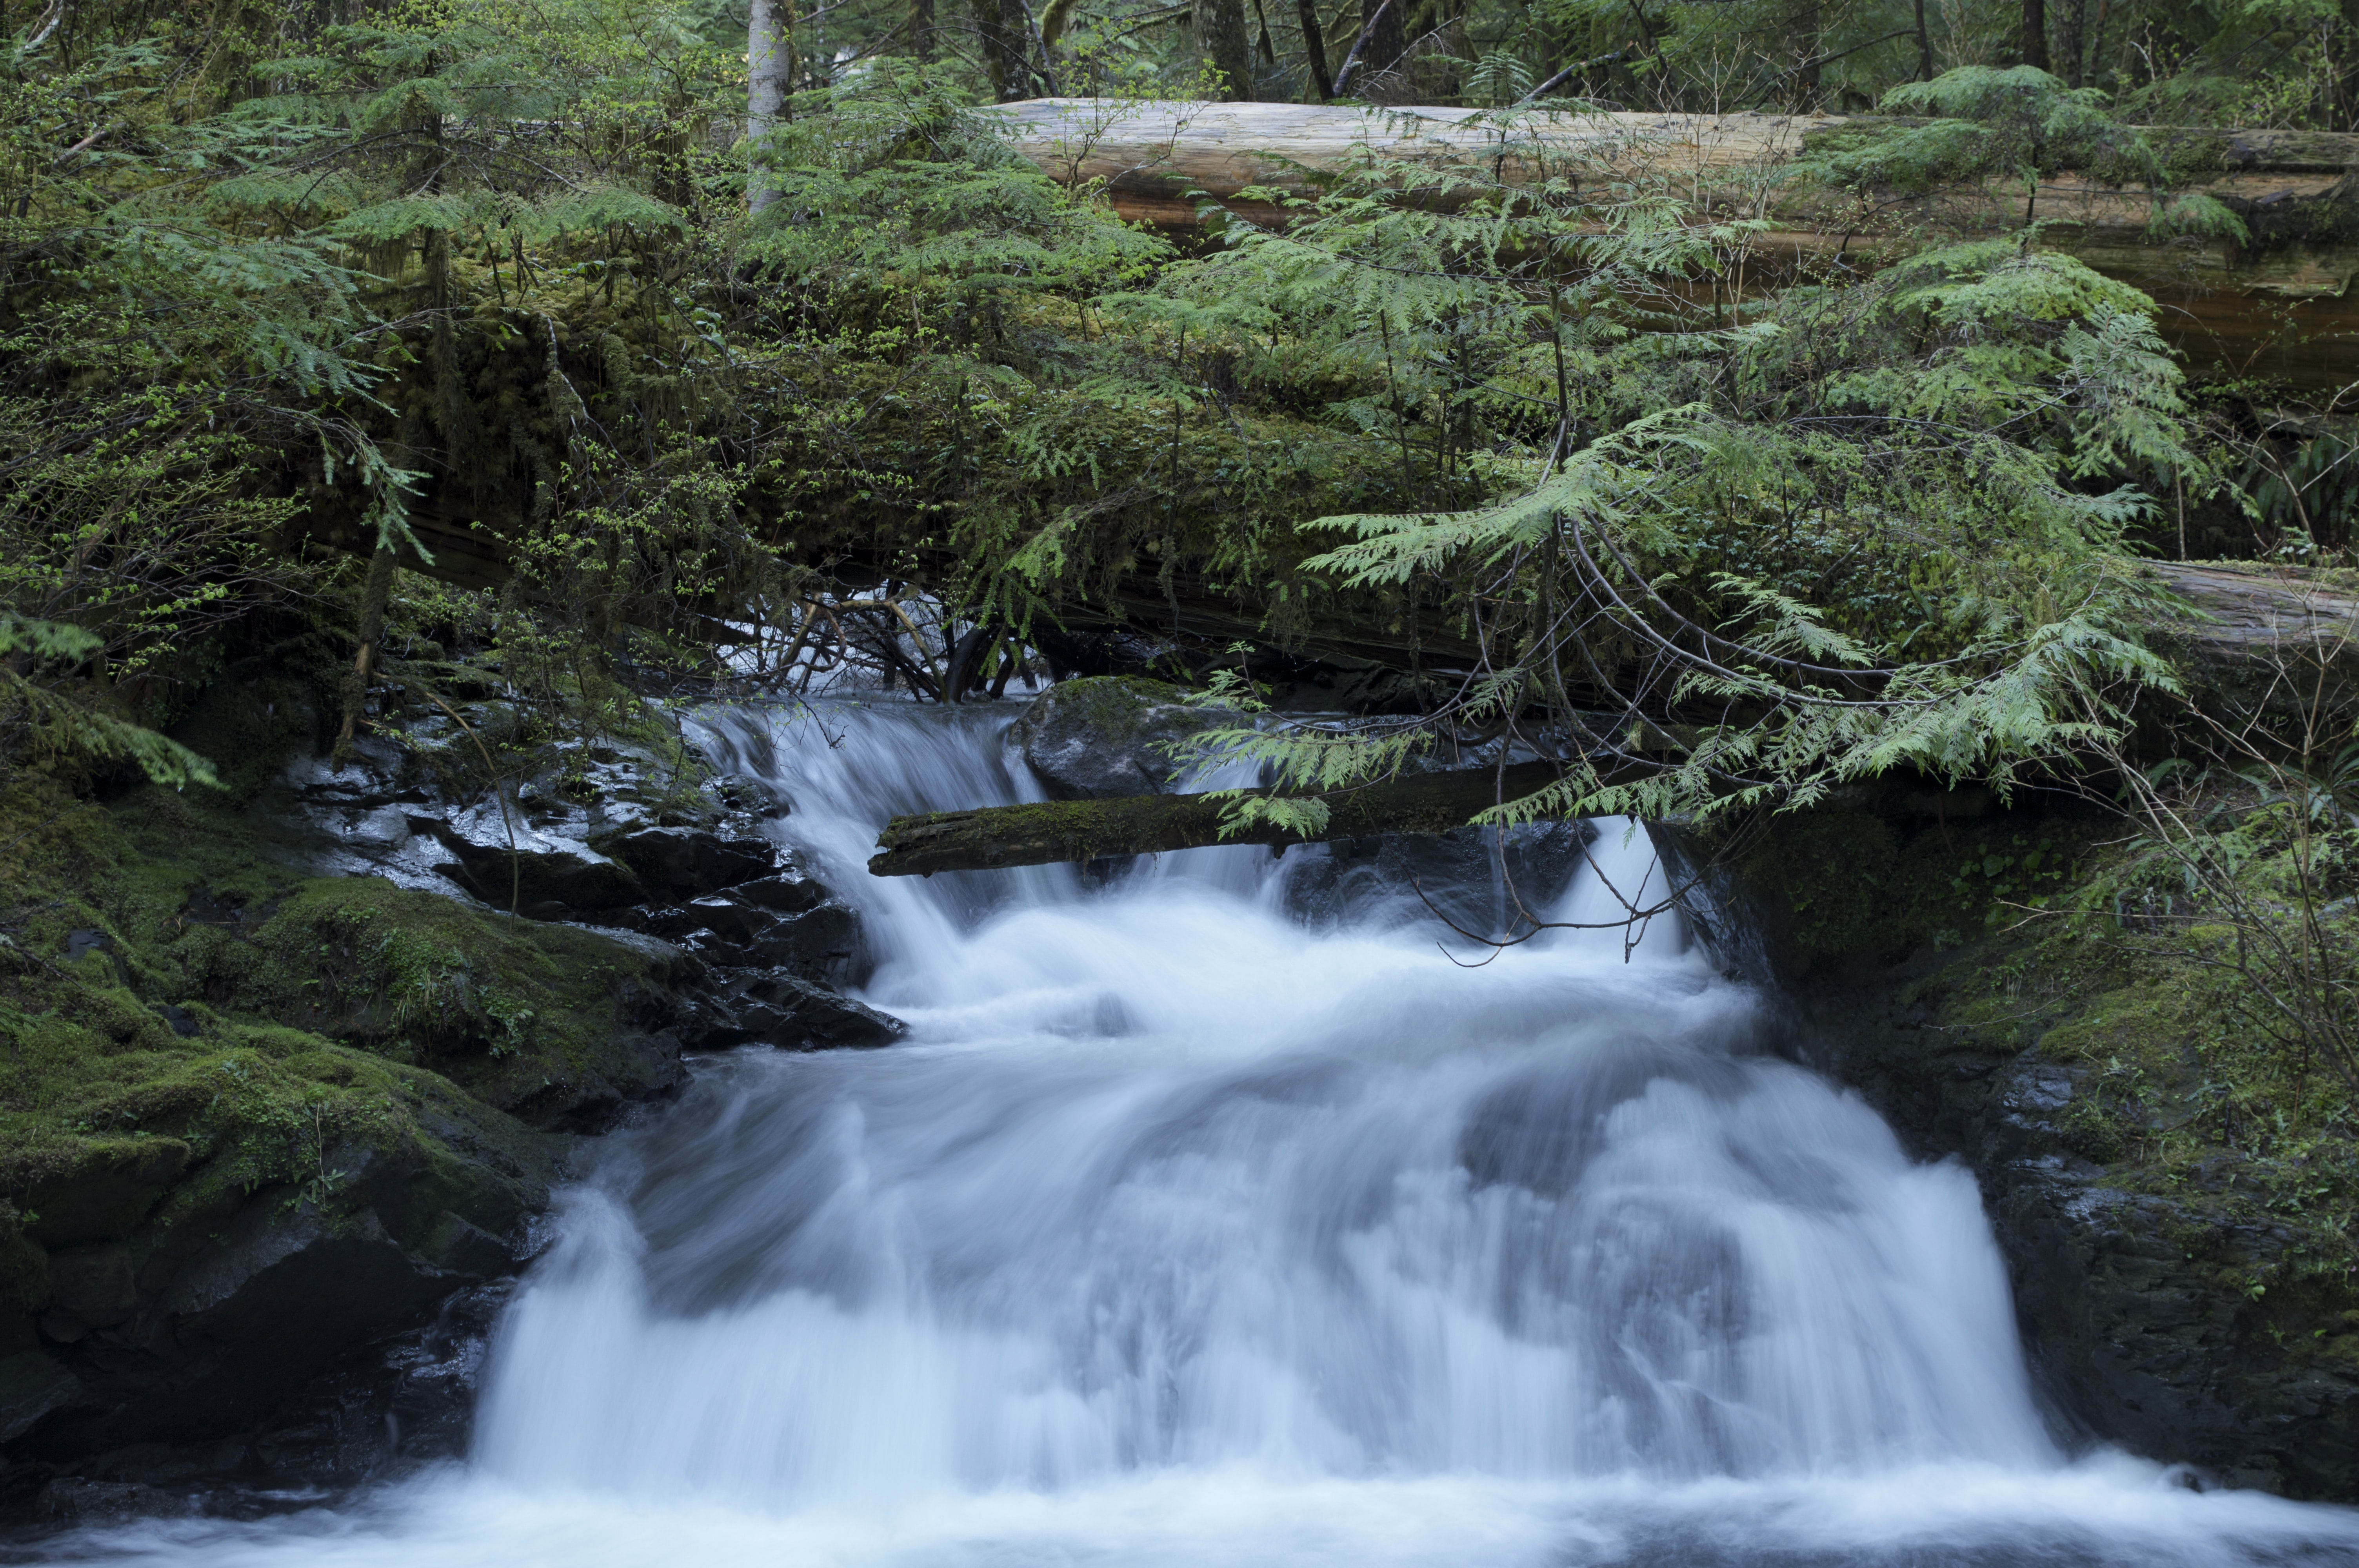 A small foaming waterfall splashing down the rocks in a forest